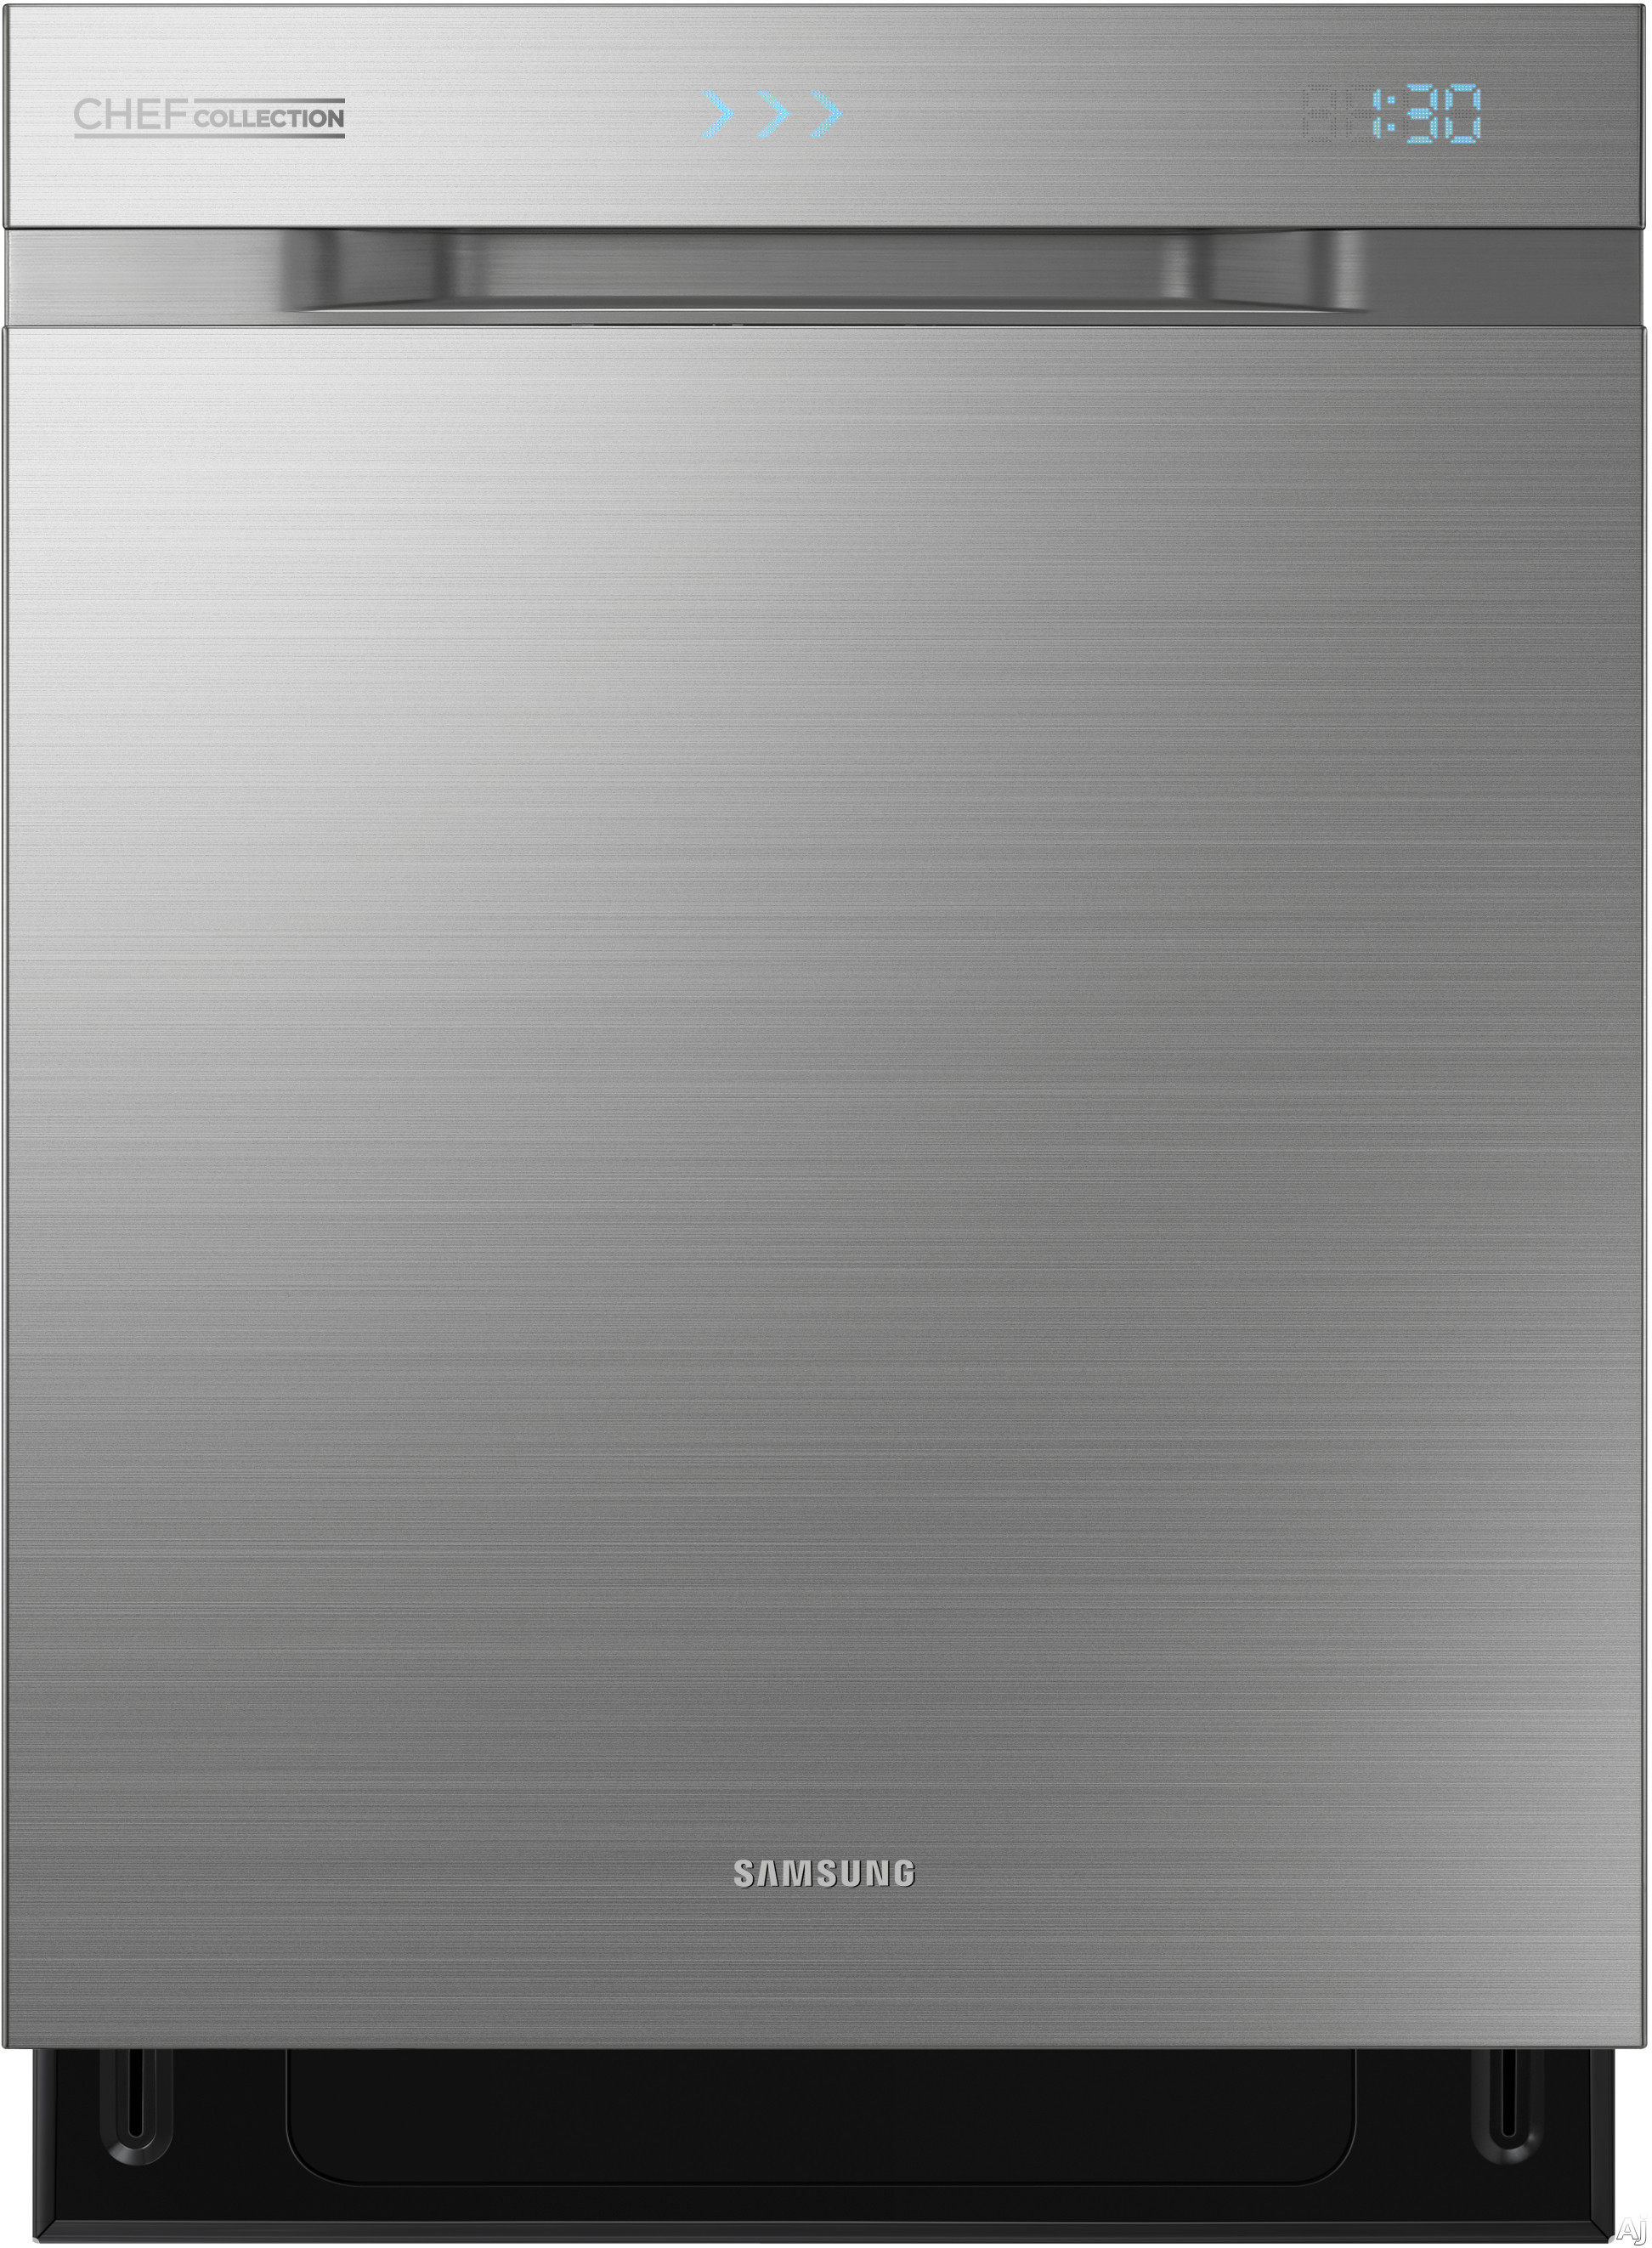 Samsung Chef Collection DW80H9970US Fully Integrated Dishwasher with 15 Place Settings 6 Cycles 6 Options Express Cycle Hidden Heat Element WaterWall System Zone Boost Third Rack with FlexTray Star Display and 40 dBA